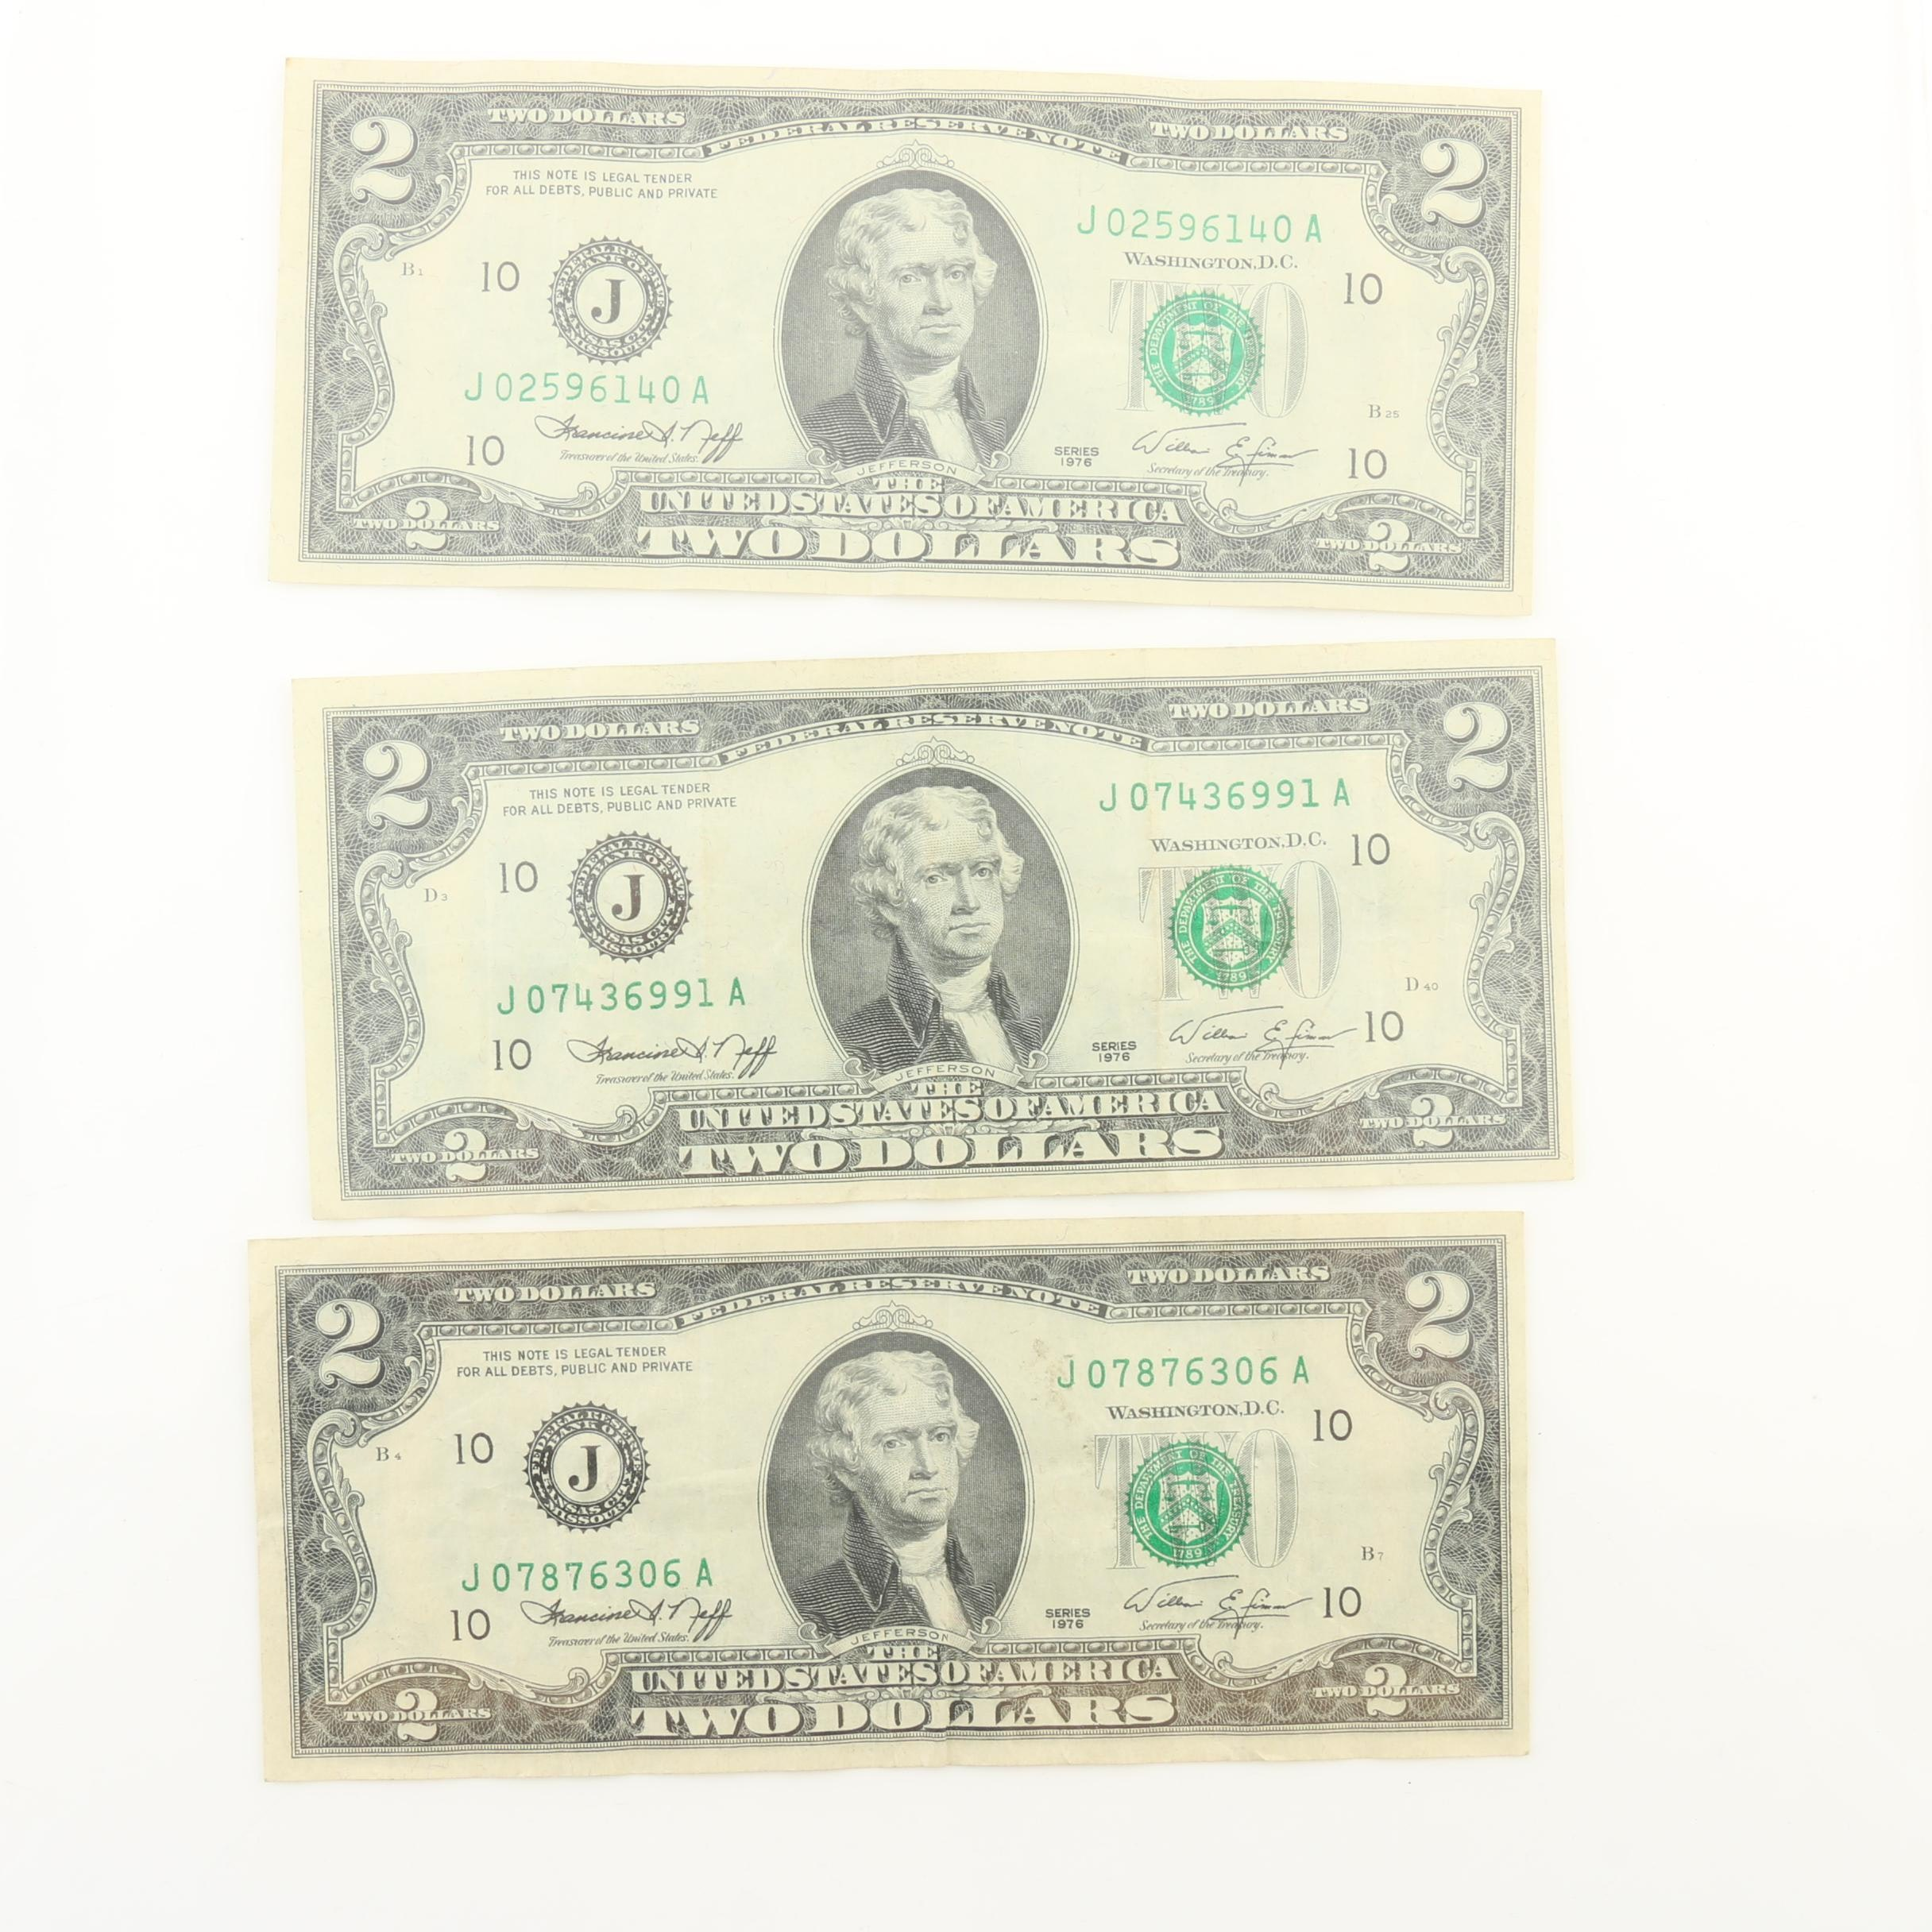 Group of Three 1976 Bicentennial $2 Federal Reserve Notes